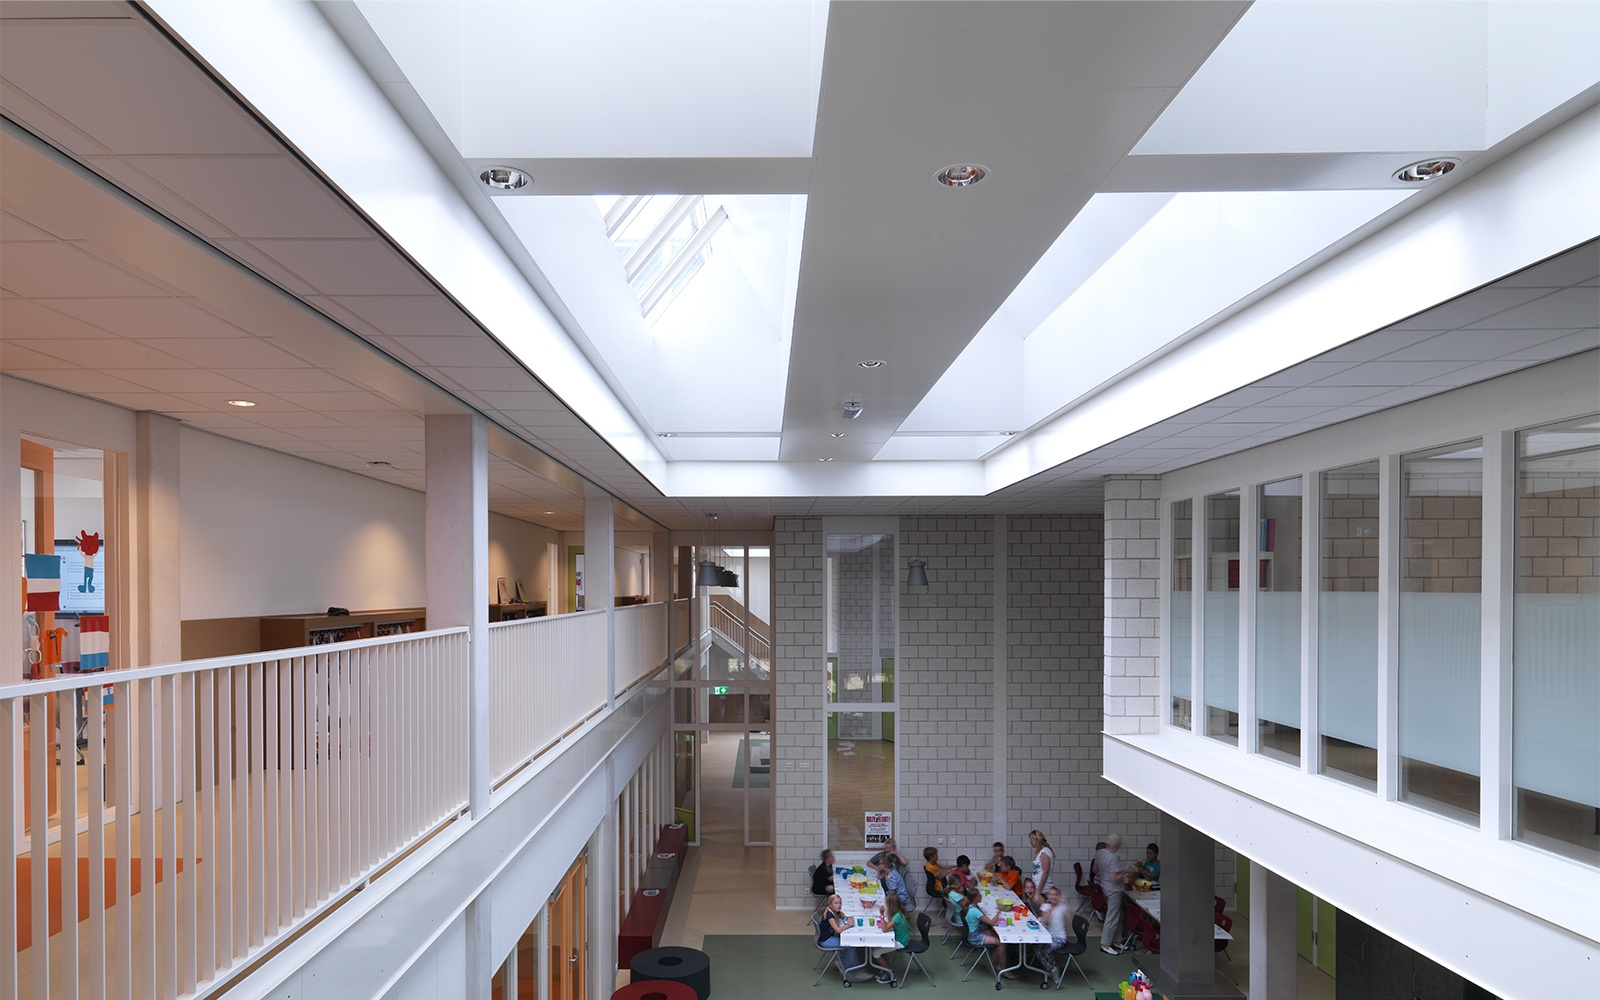 Why Is Natural Light So Important in School Design?